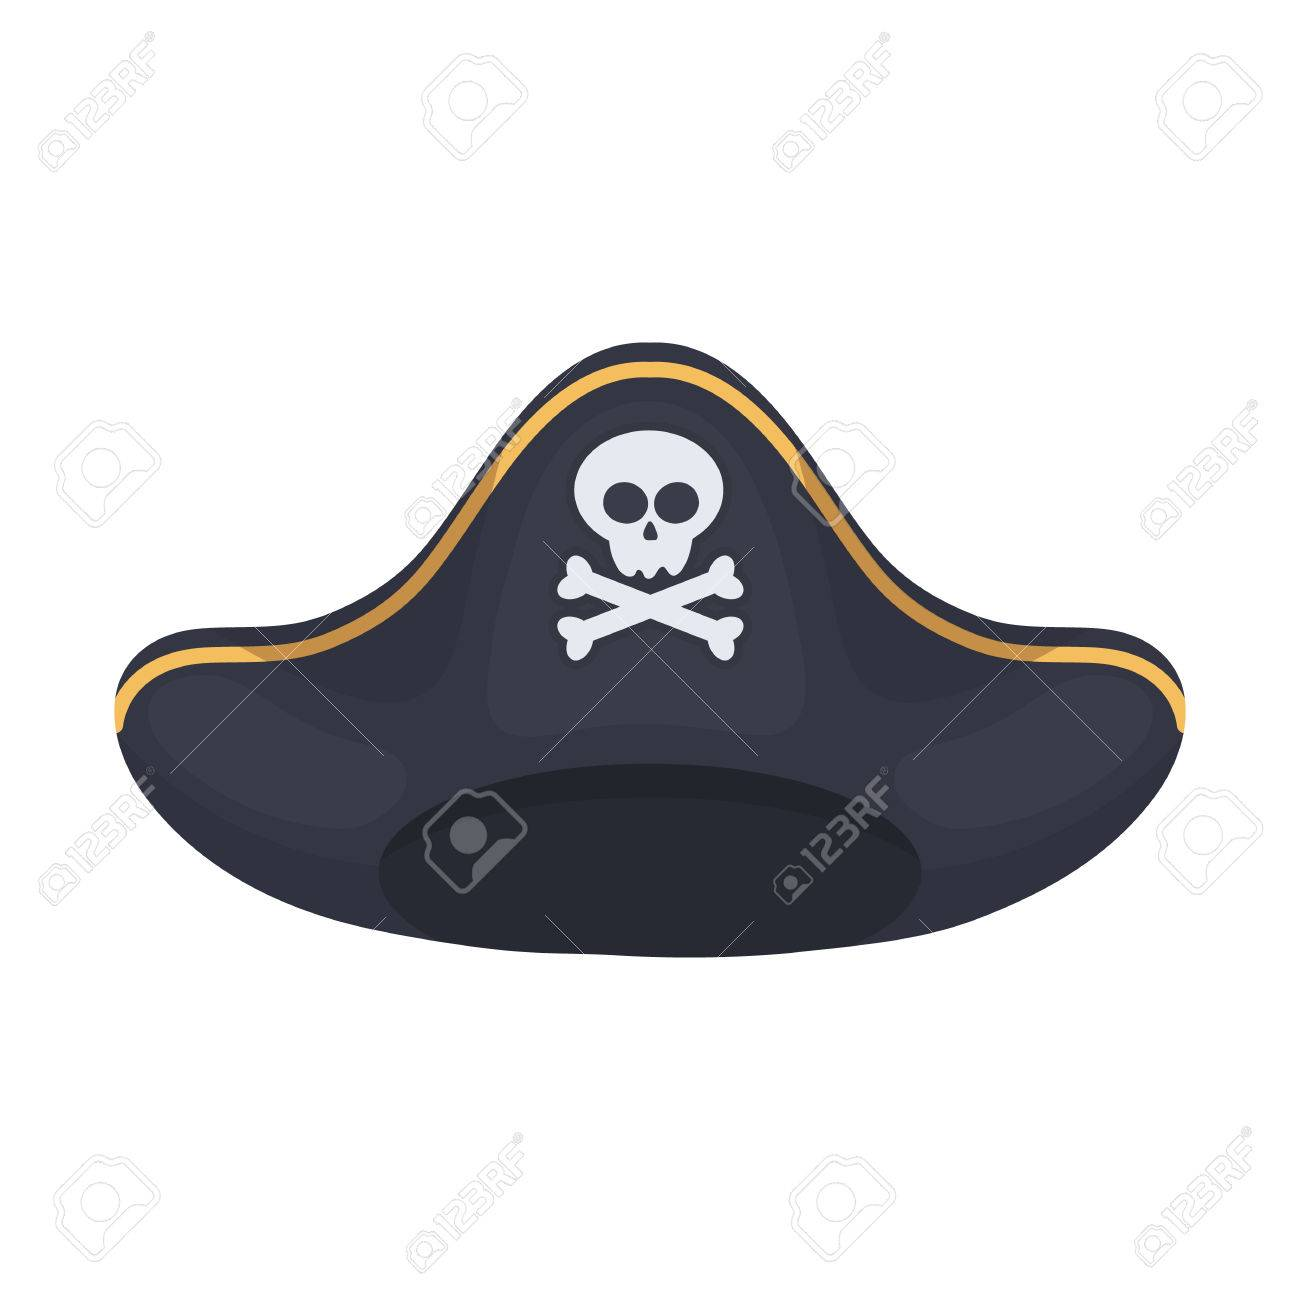 pirate hat icon in cartoon style isolated on white background rh 123rf com cartoon pirate hat images cartoon pirate hat images